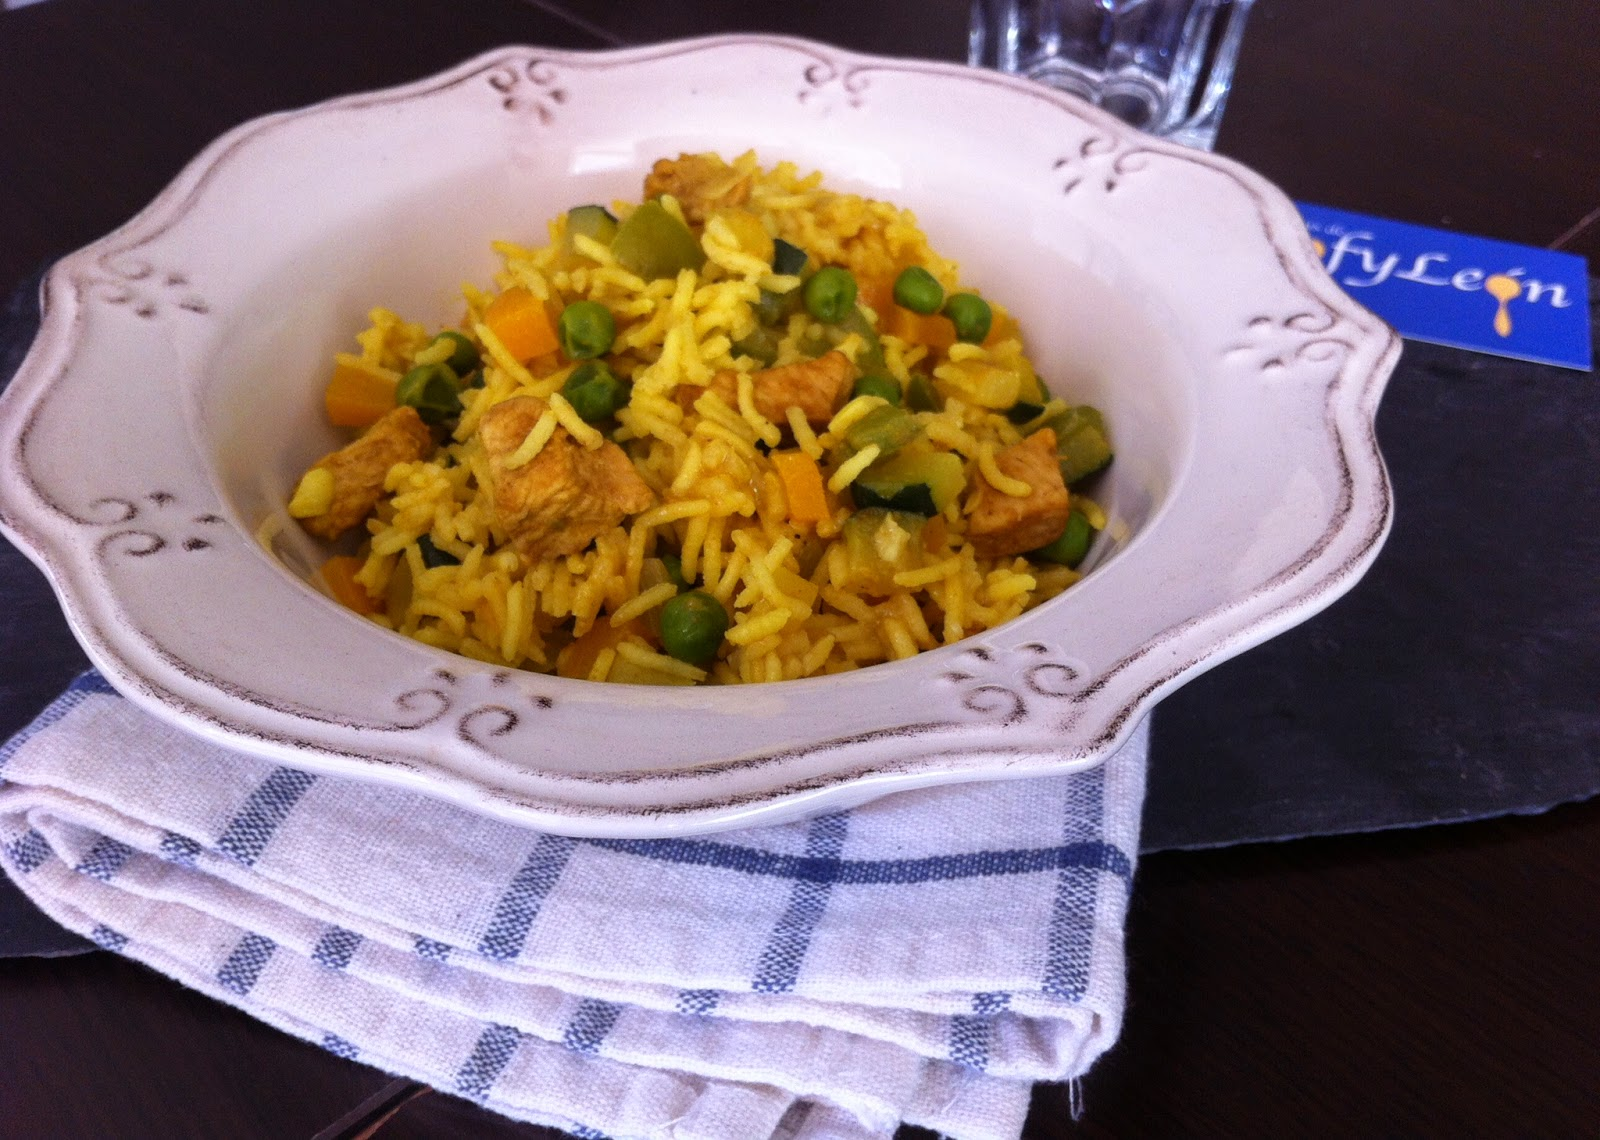 Receta de arroz con pollo y verduras al curry.